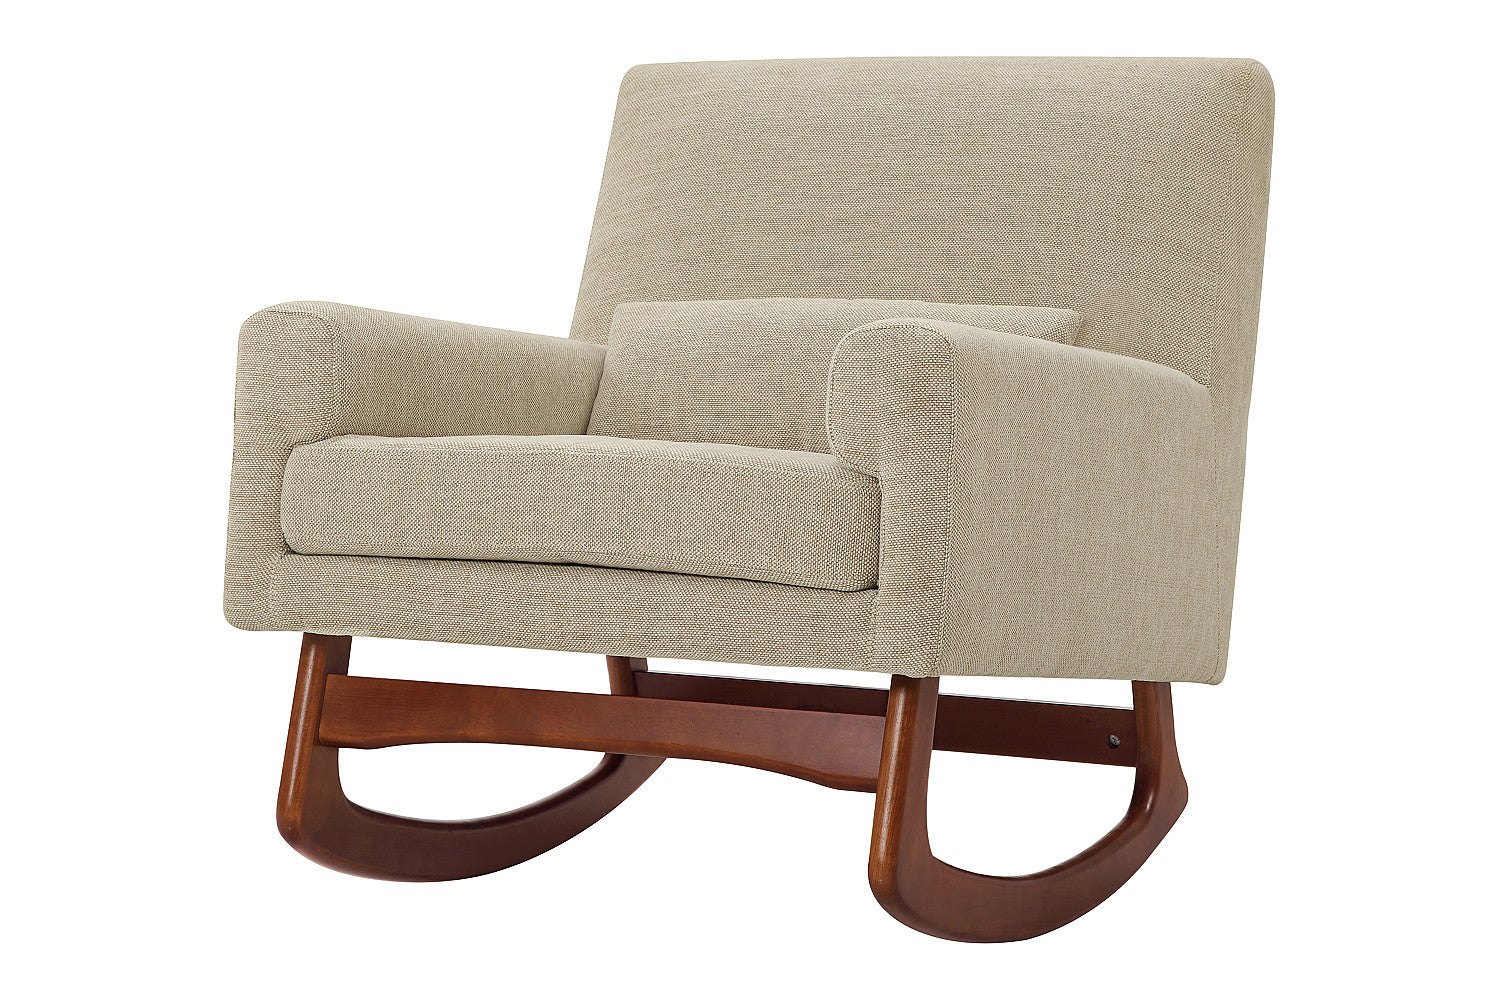 Nurseryworks Sleepytime Rocker Chair With Walnut Legs